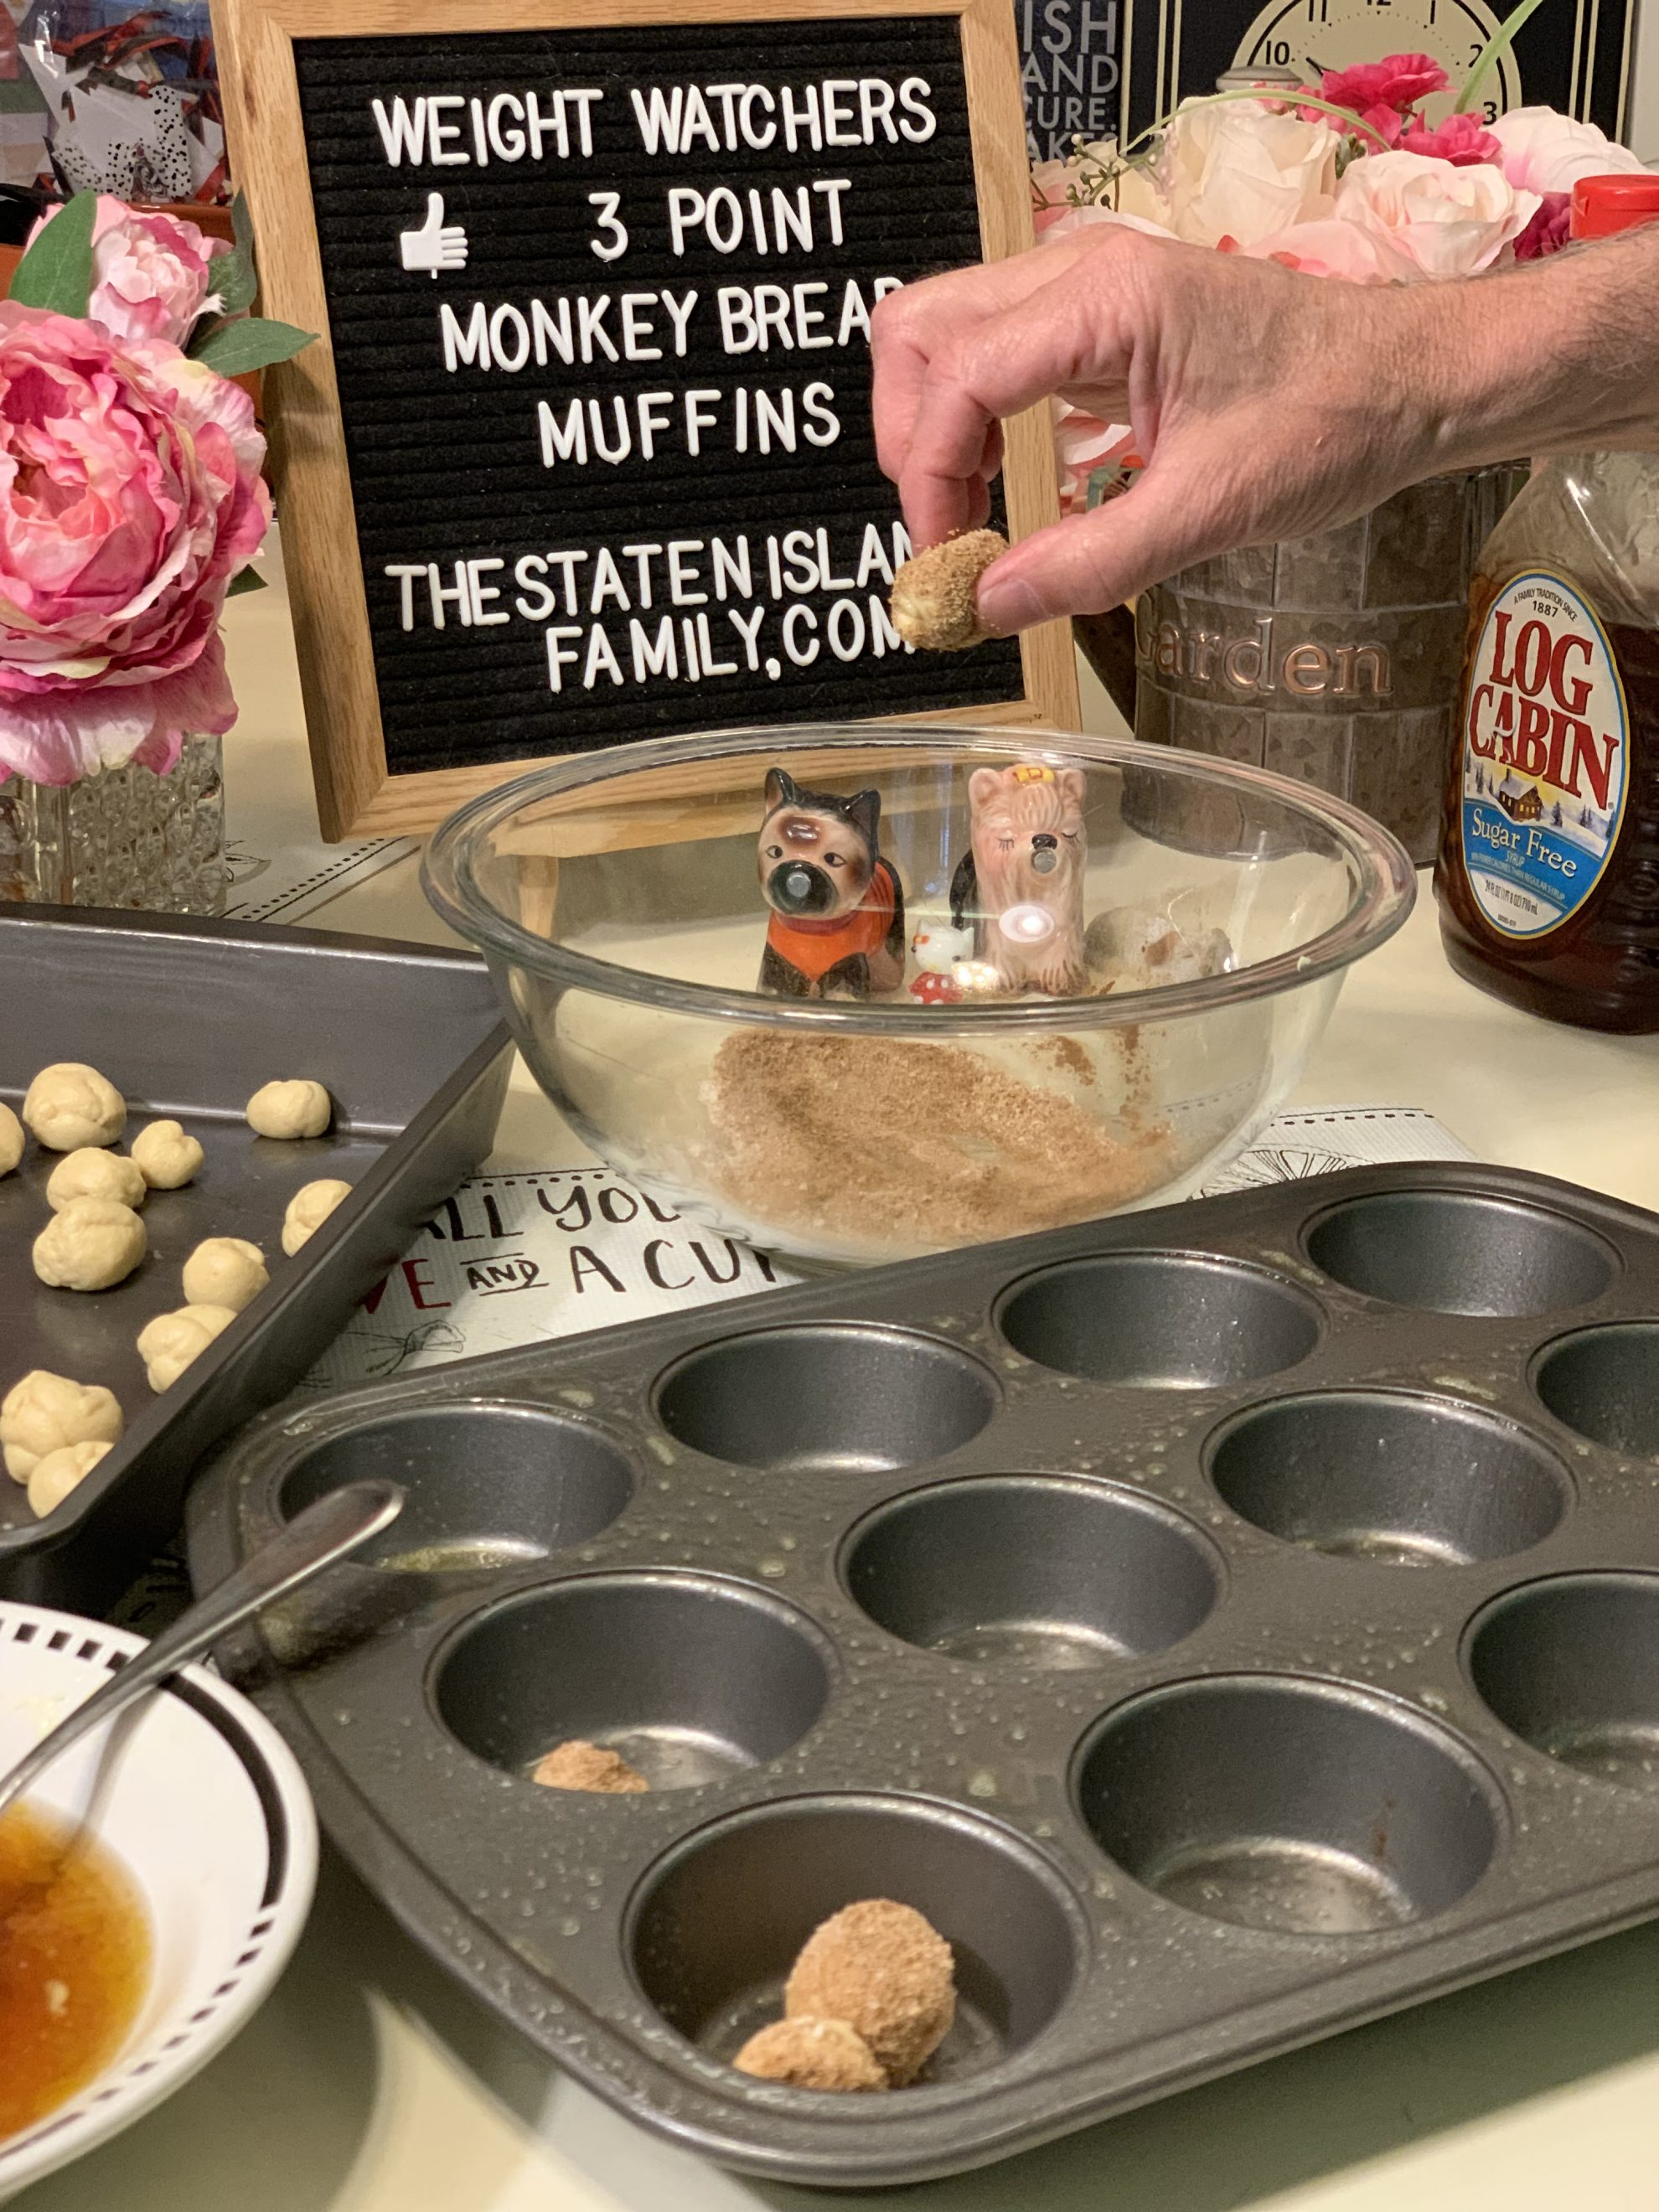 Weight Watchers Monkey Bread Muffins just 3 points per muffin